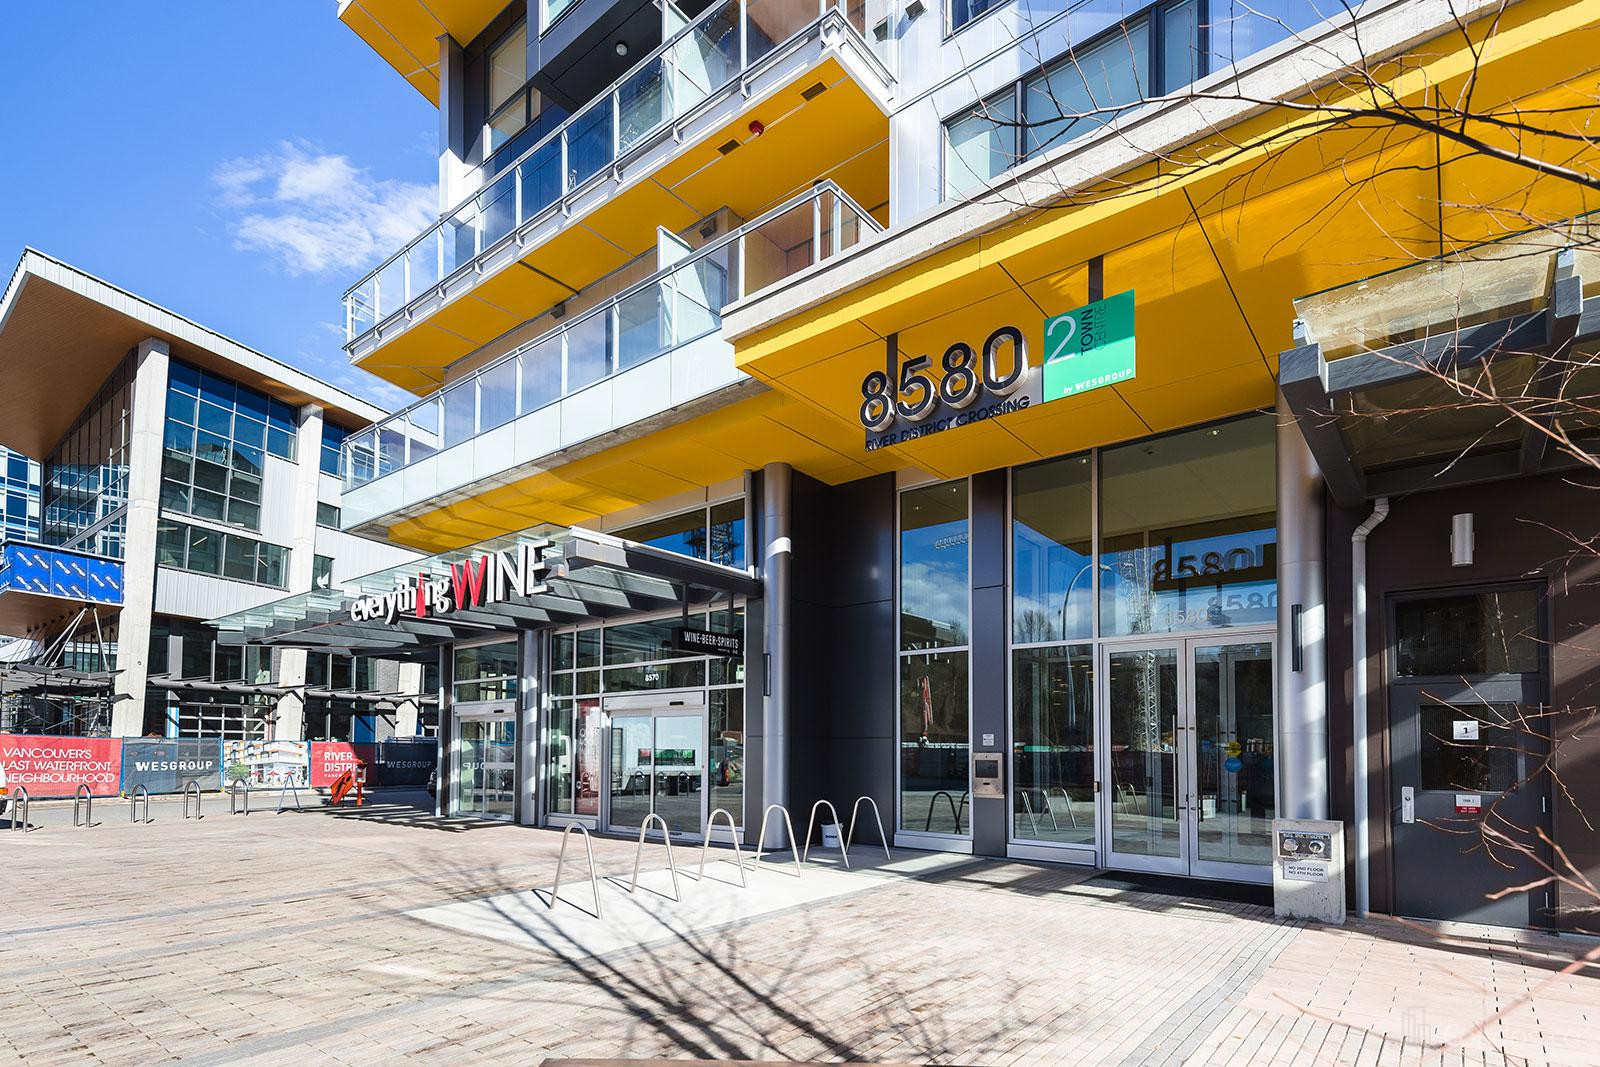 Two Town Centre at 8580 River District Crossing, Vancouver 1